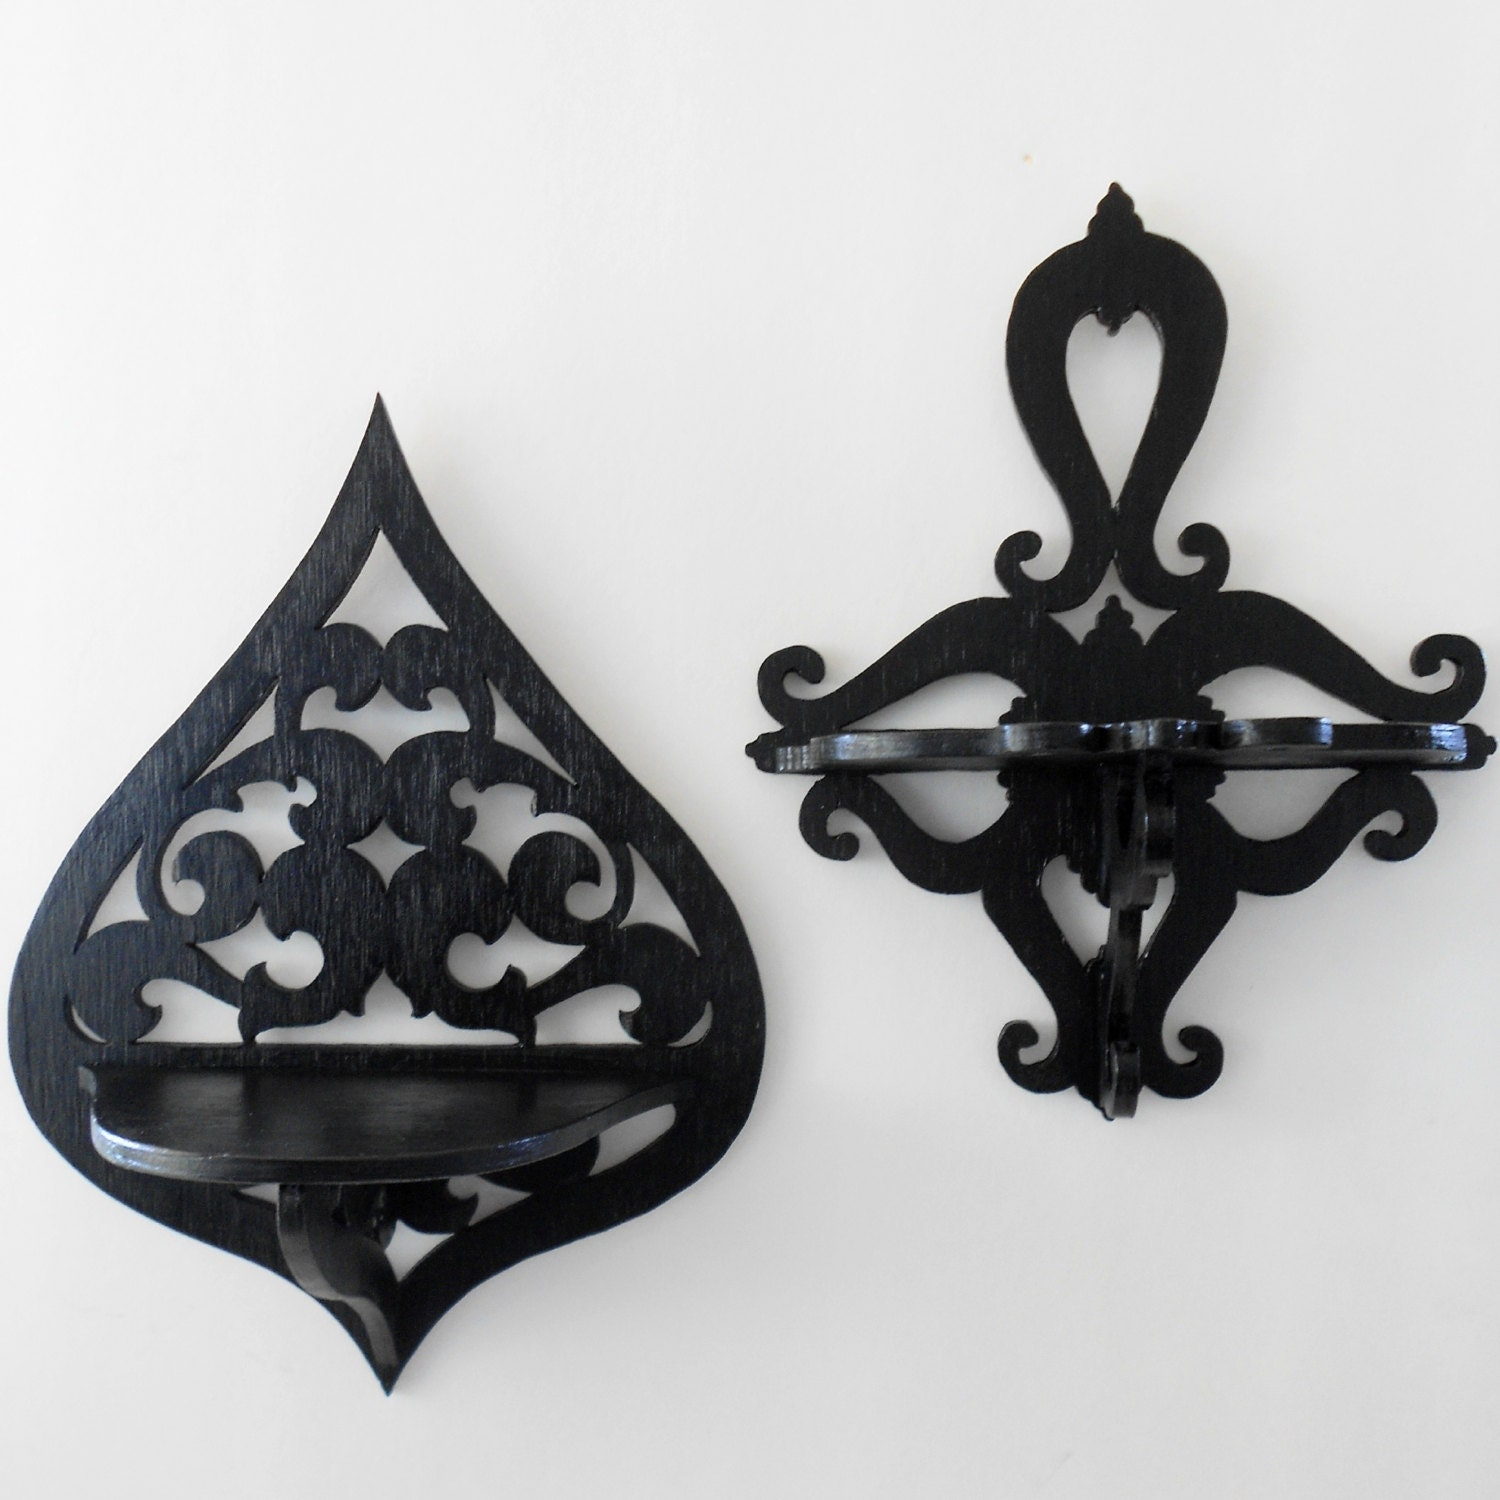 Gothic home decor wall shelf sconce decorative shelf - Decorative wall sconce ...